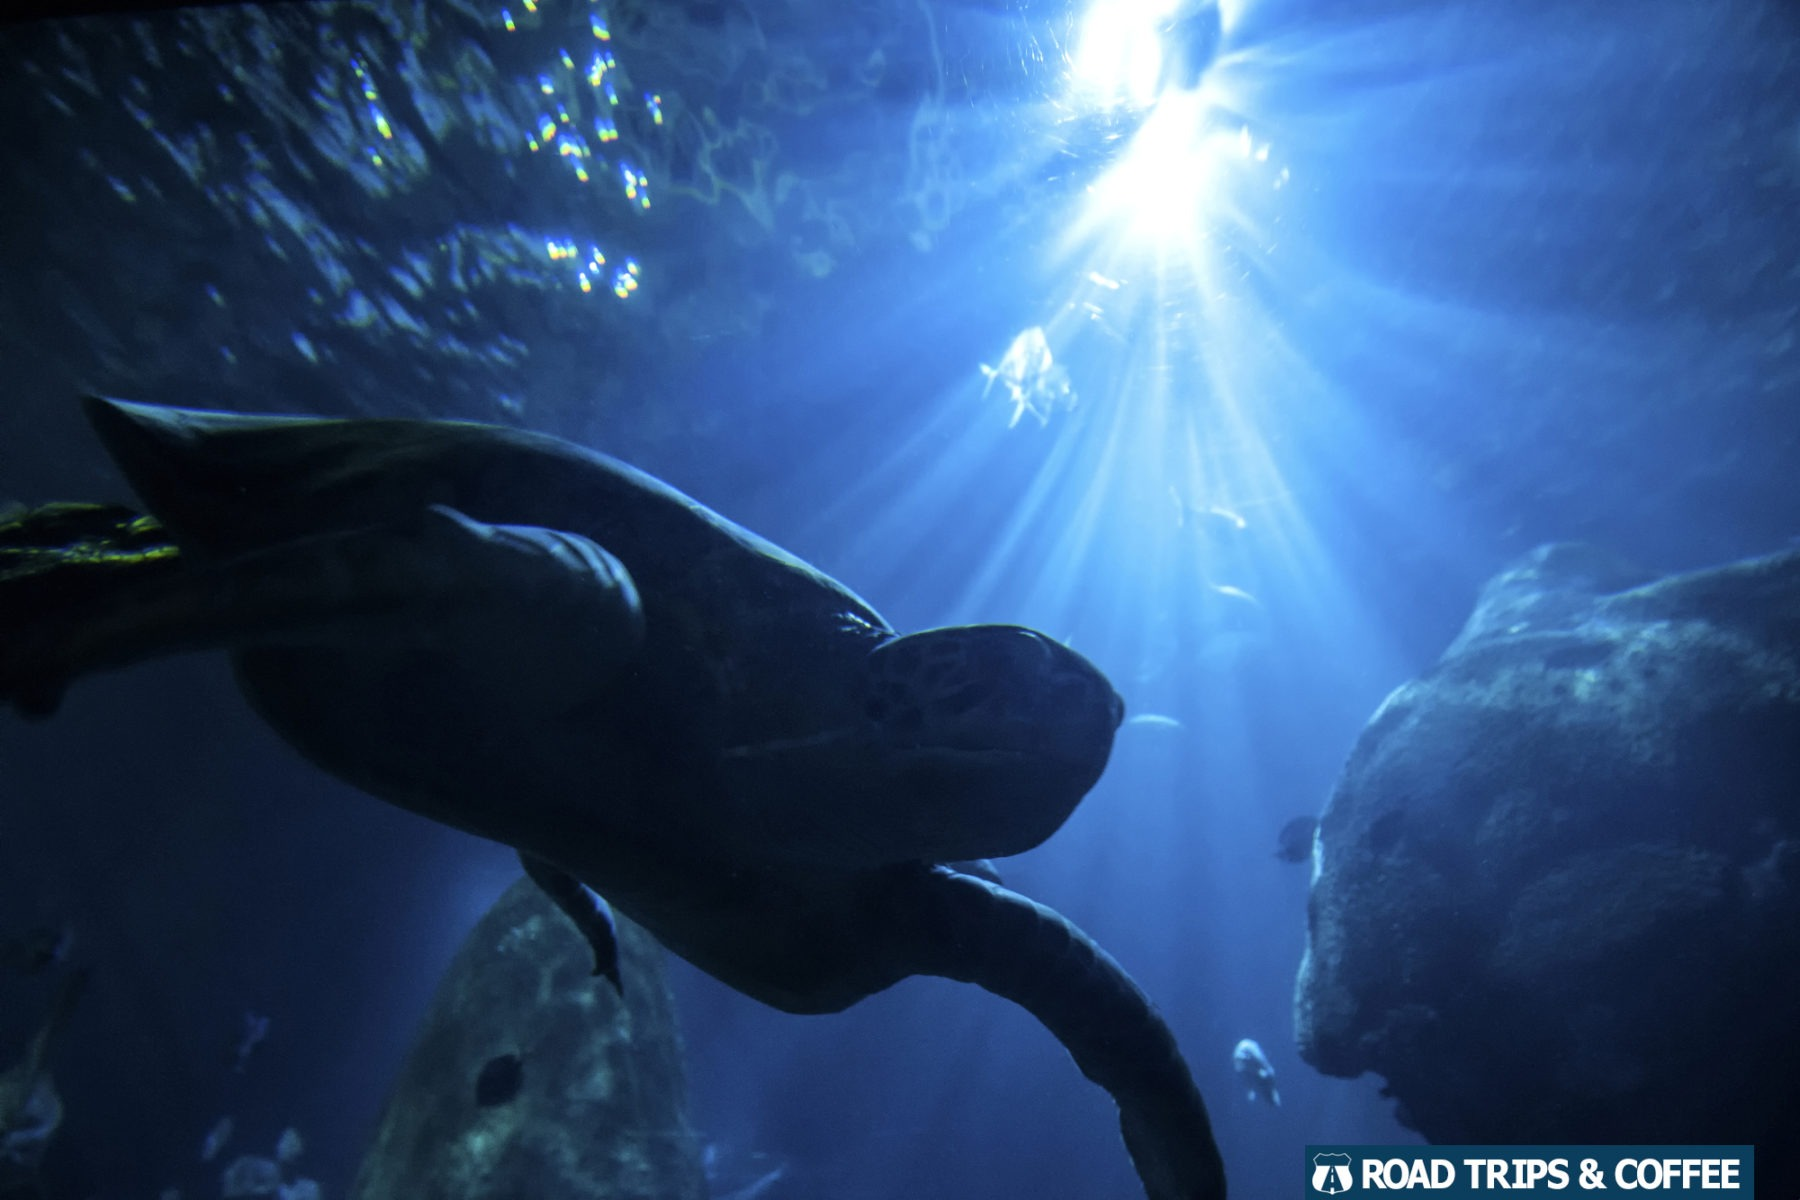 A large turtle swims through a massive tank at the Tennessee Aquarium in Chattanooga, Tennessee